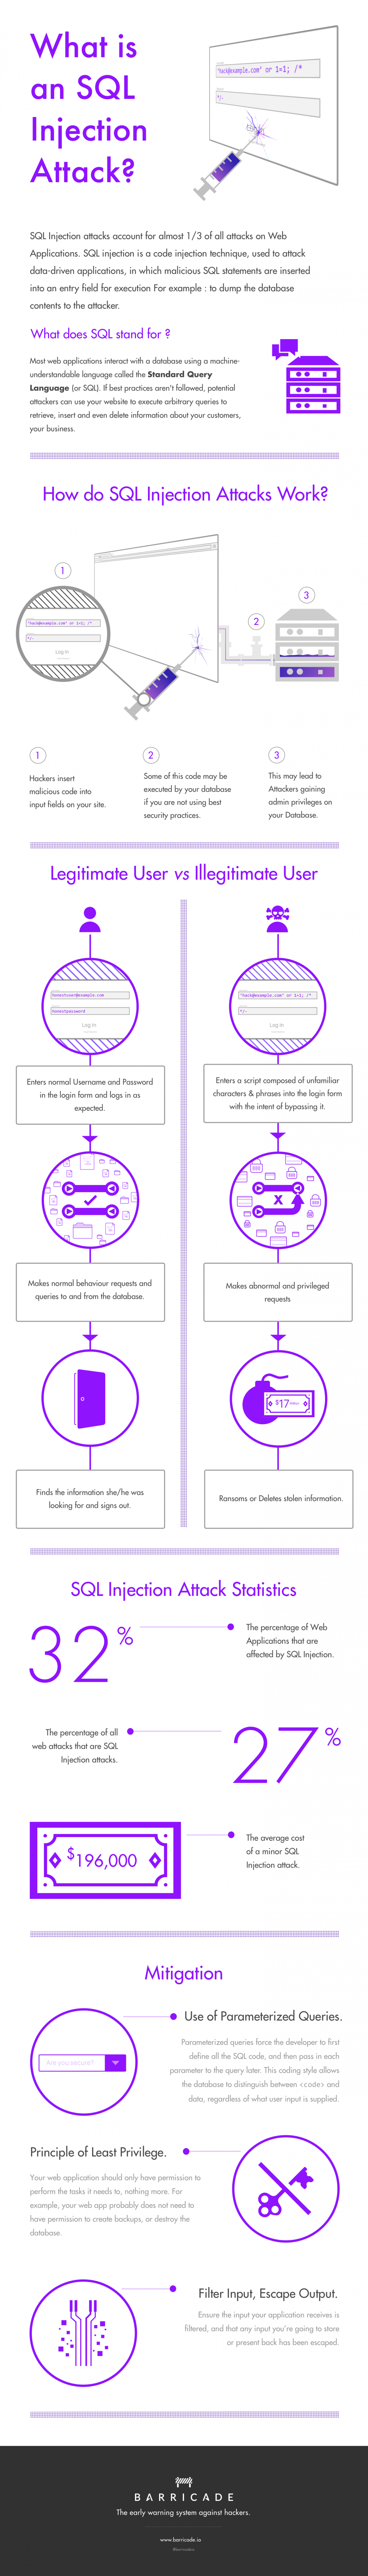 SQL Injection Attacks Infographic Infographic